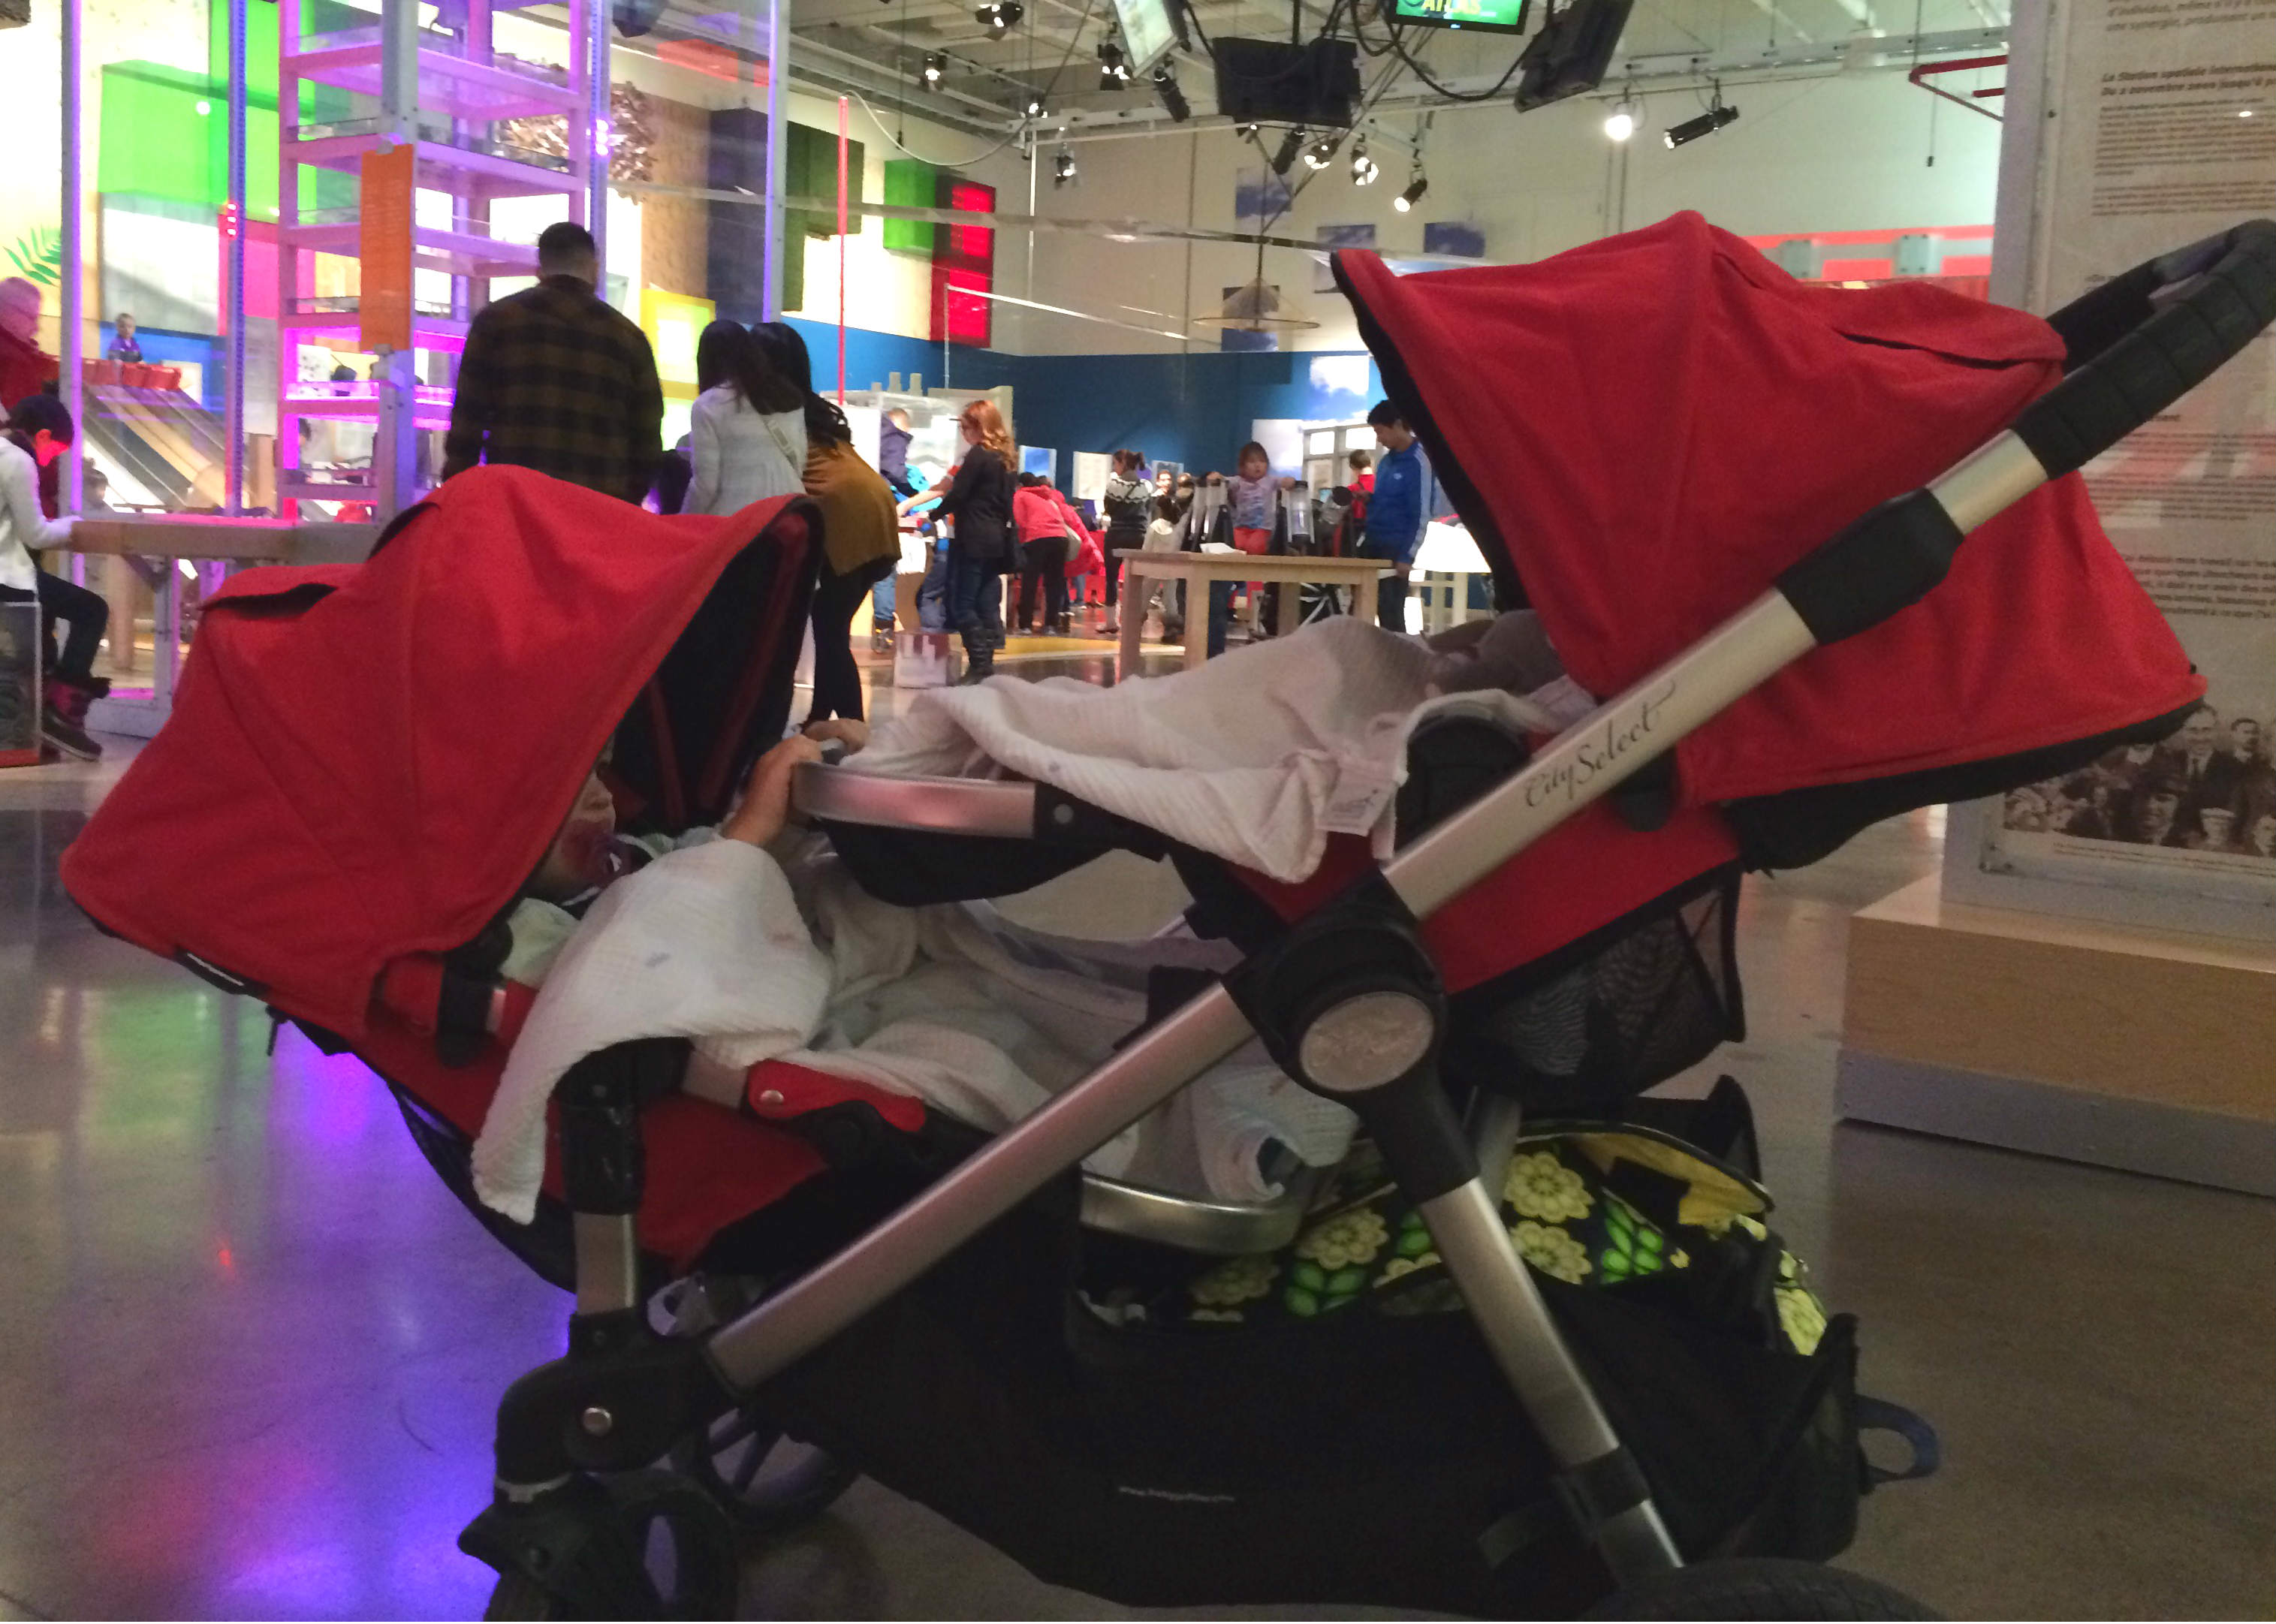 twins reclined in stroller